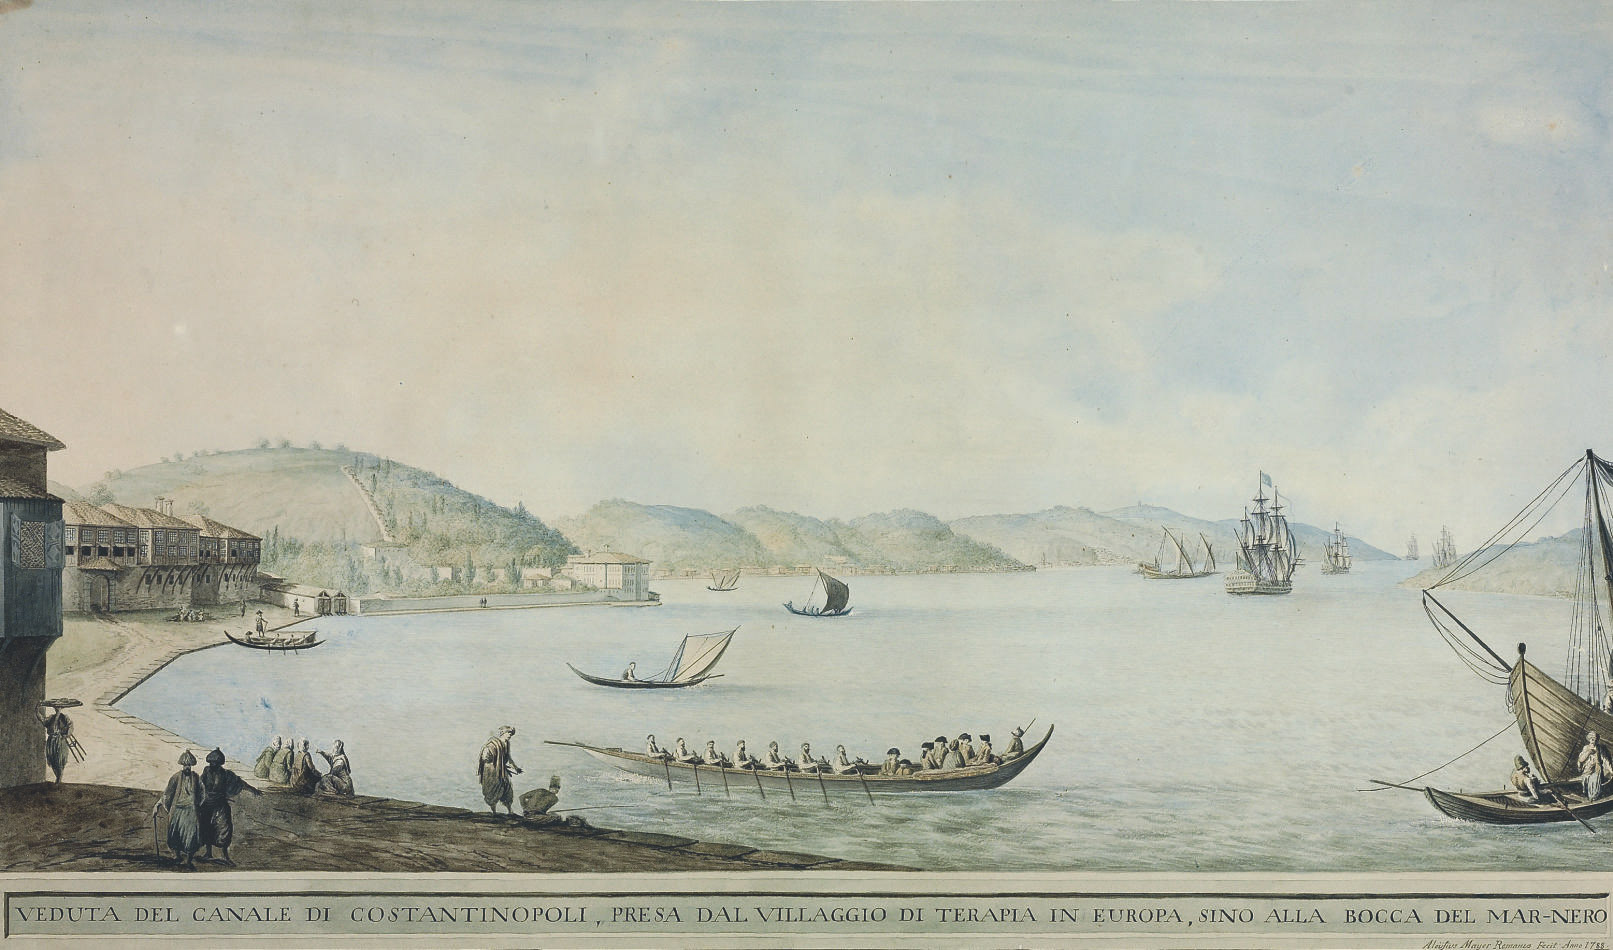 View of the canal of Constantinople, from the village of Terapia up to the mouth of the Black Sea